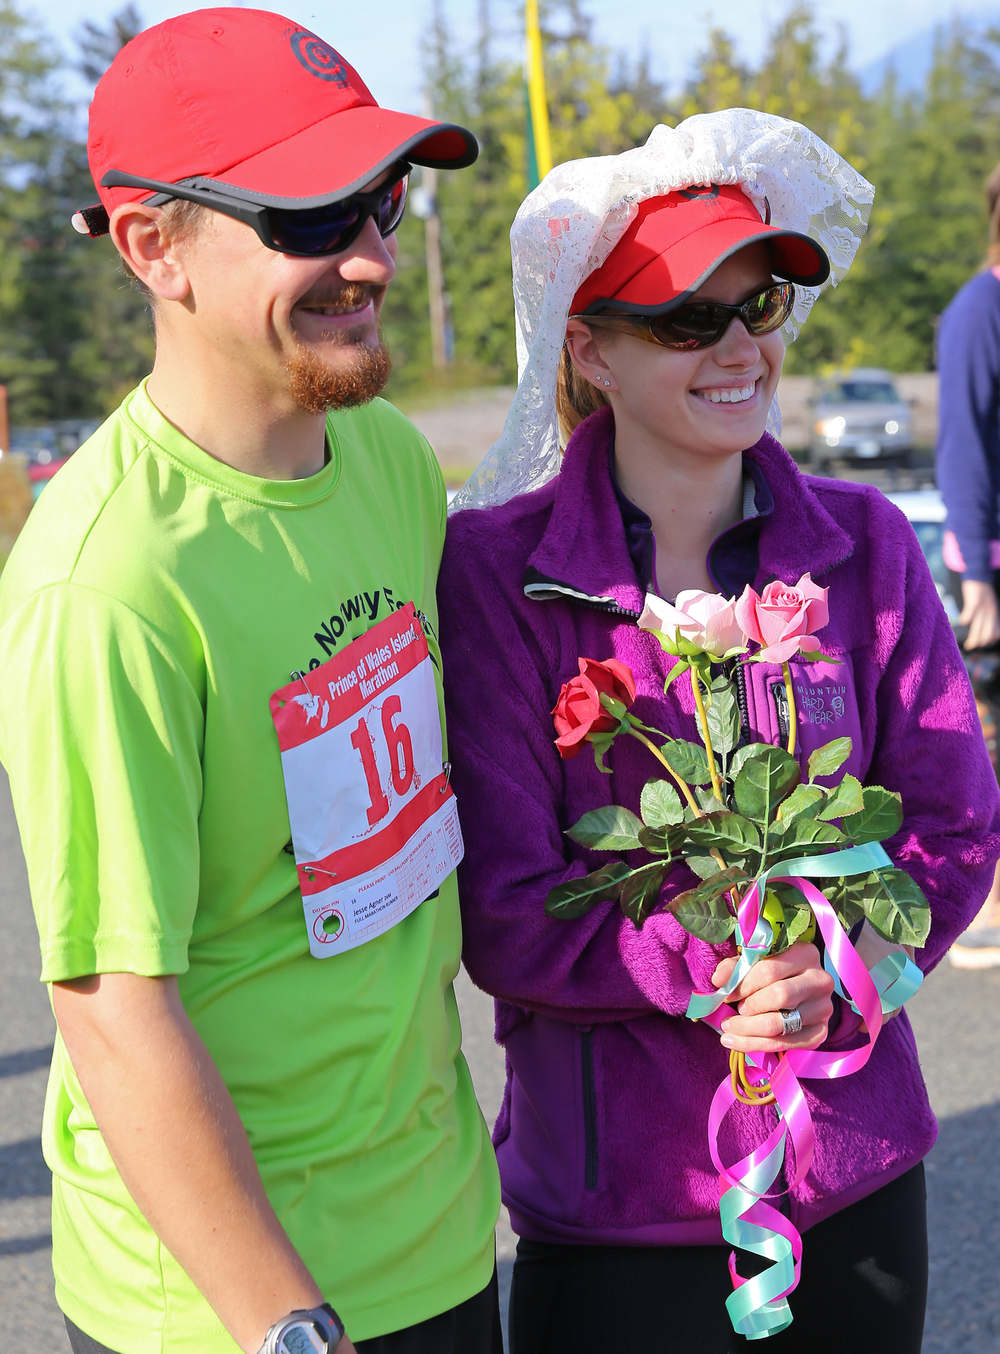 Jesse Agner and JoAnn Day will be married two weeks after running in this marathon.